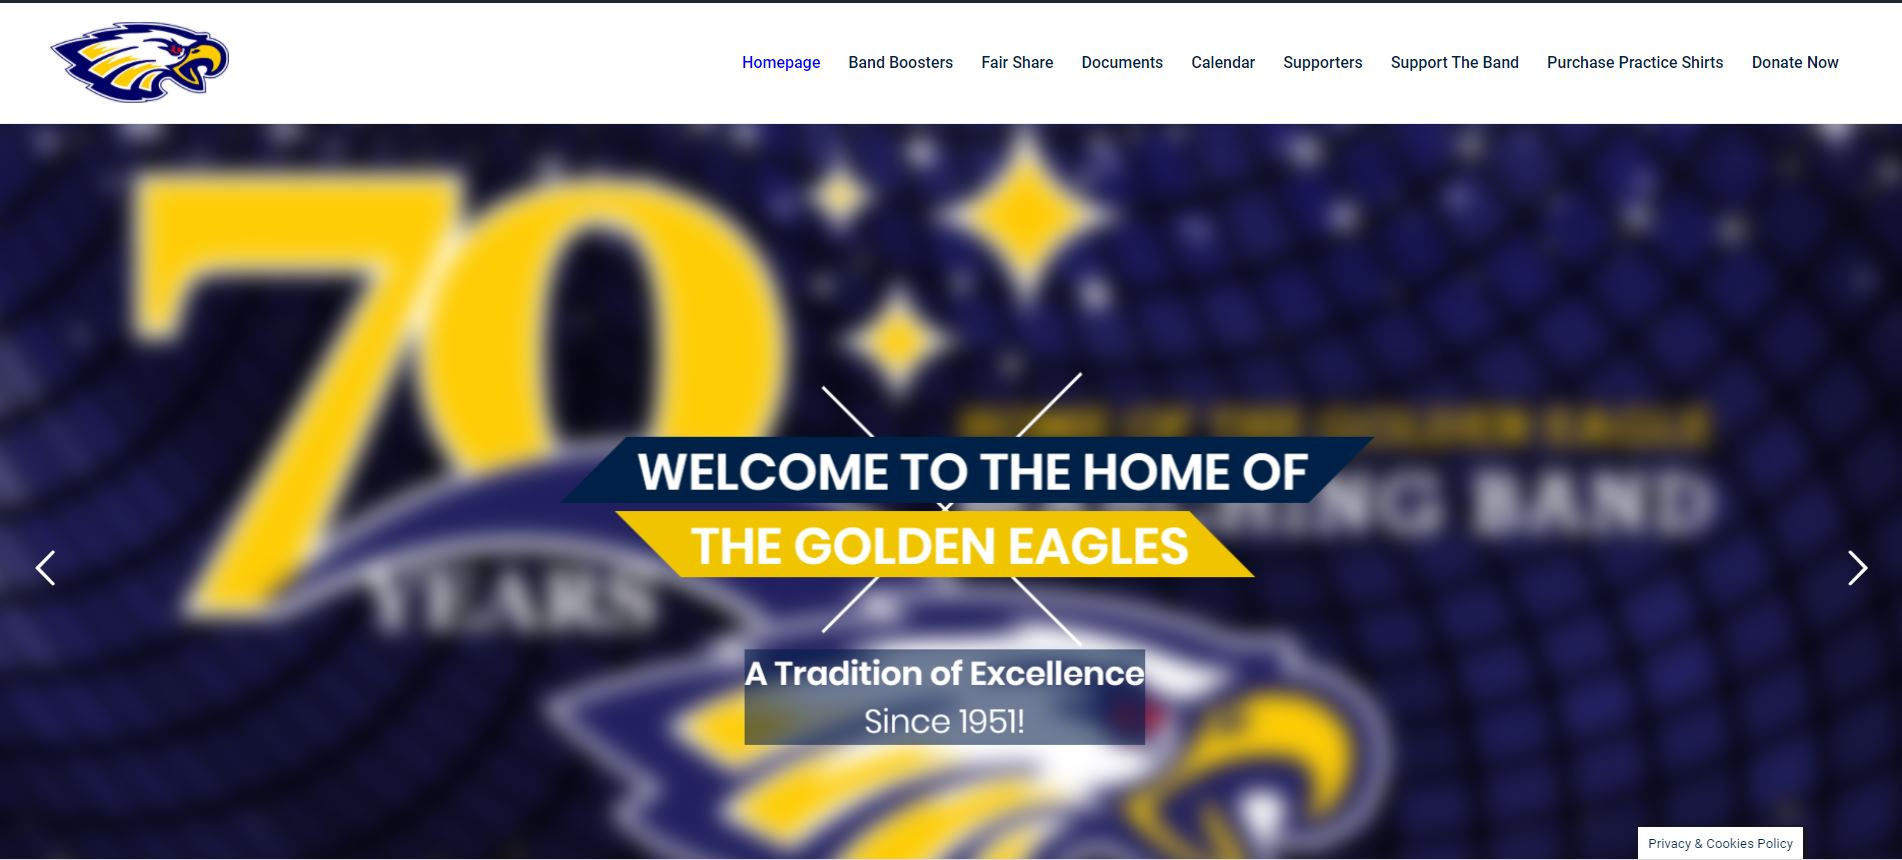 Naples High School Band Website Design